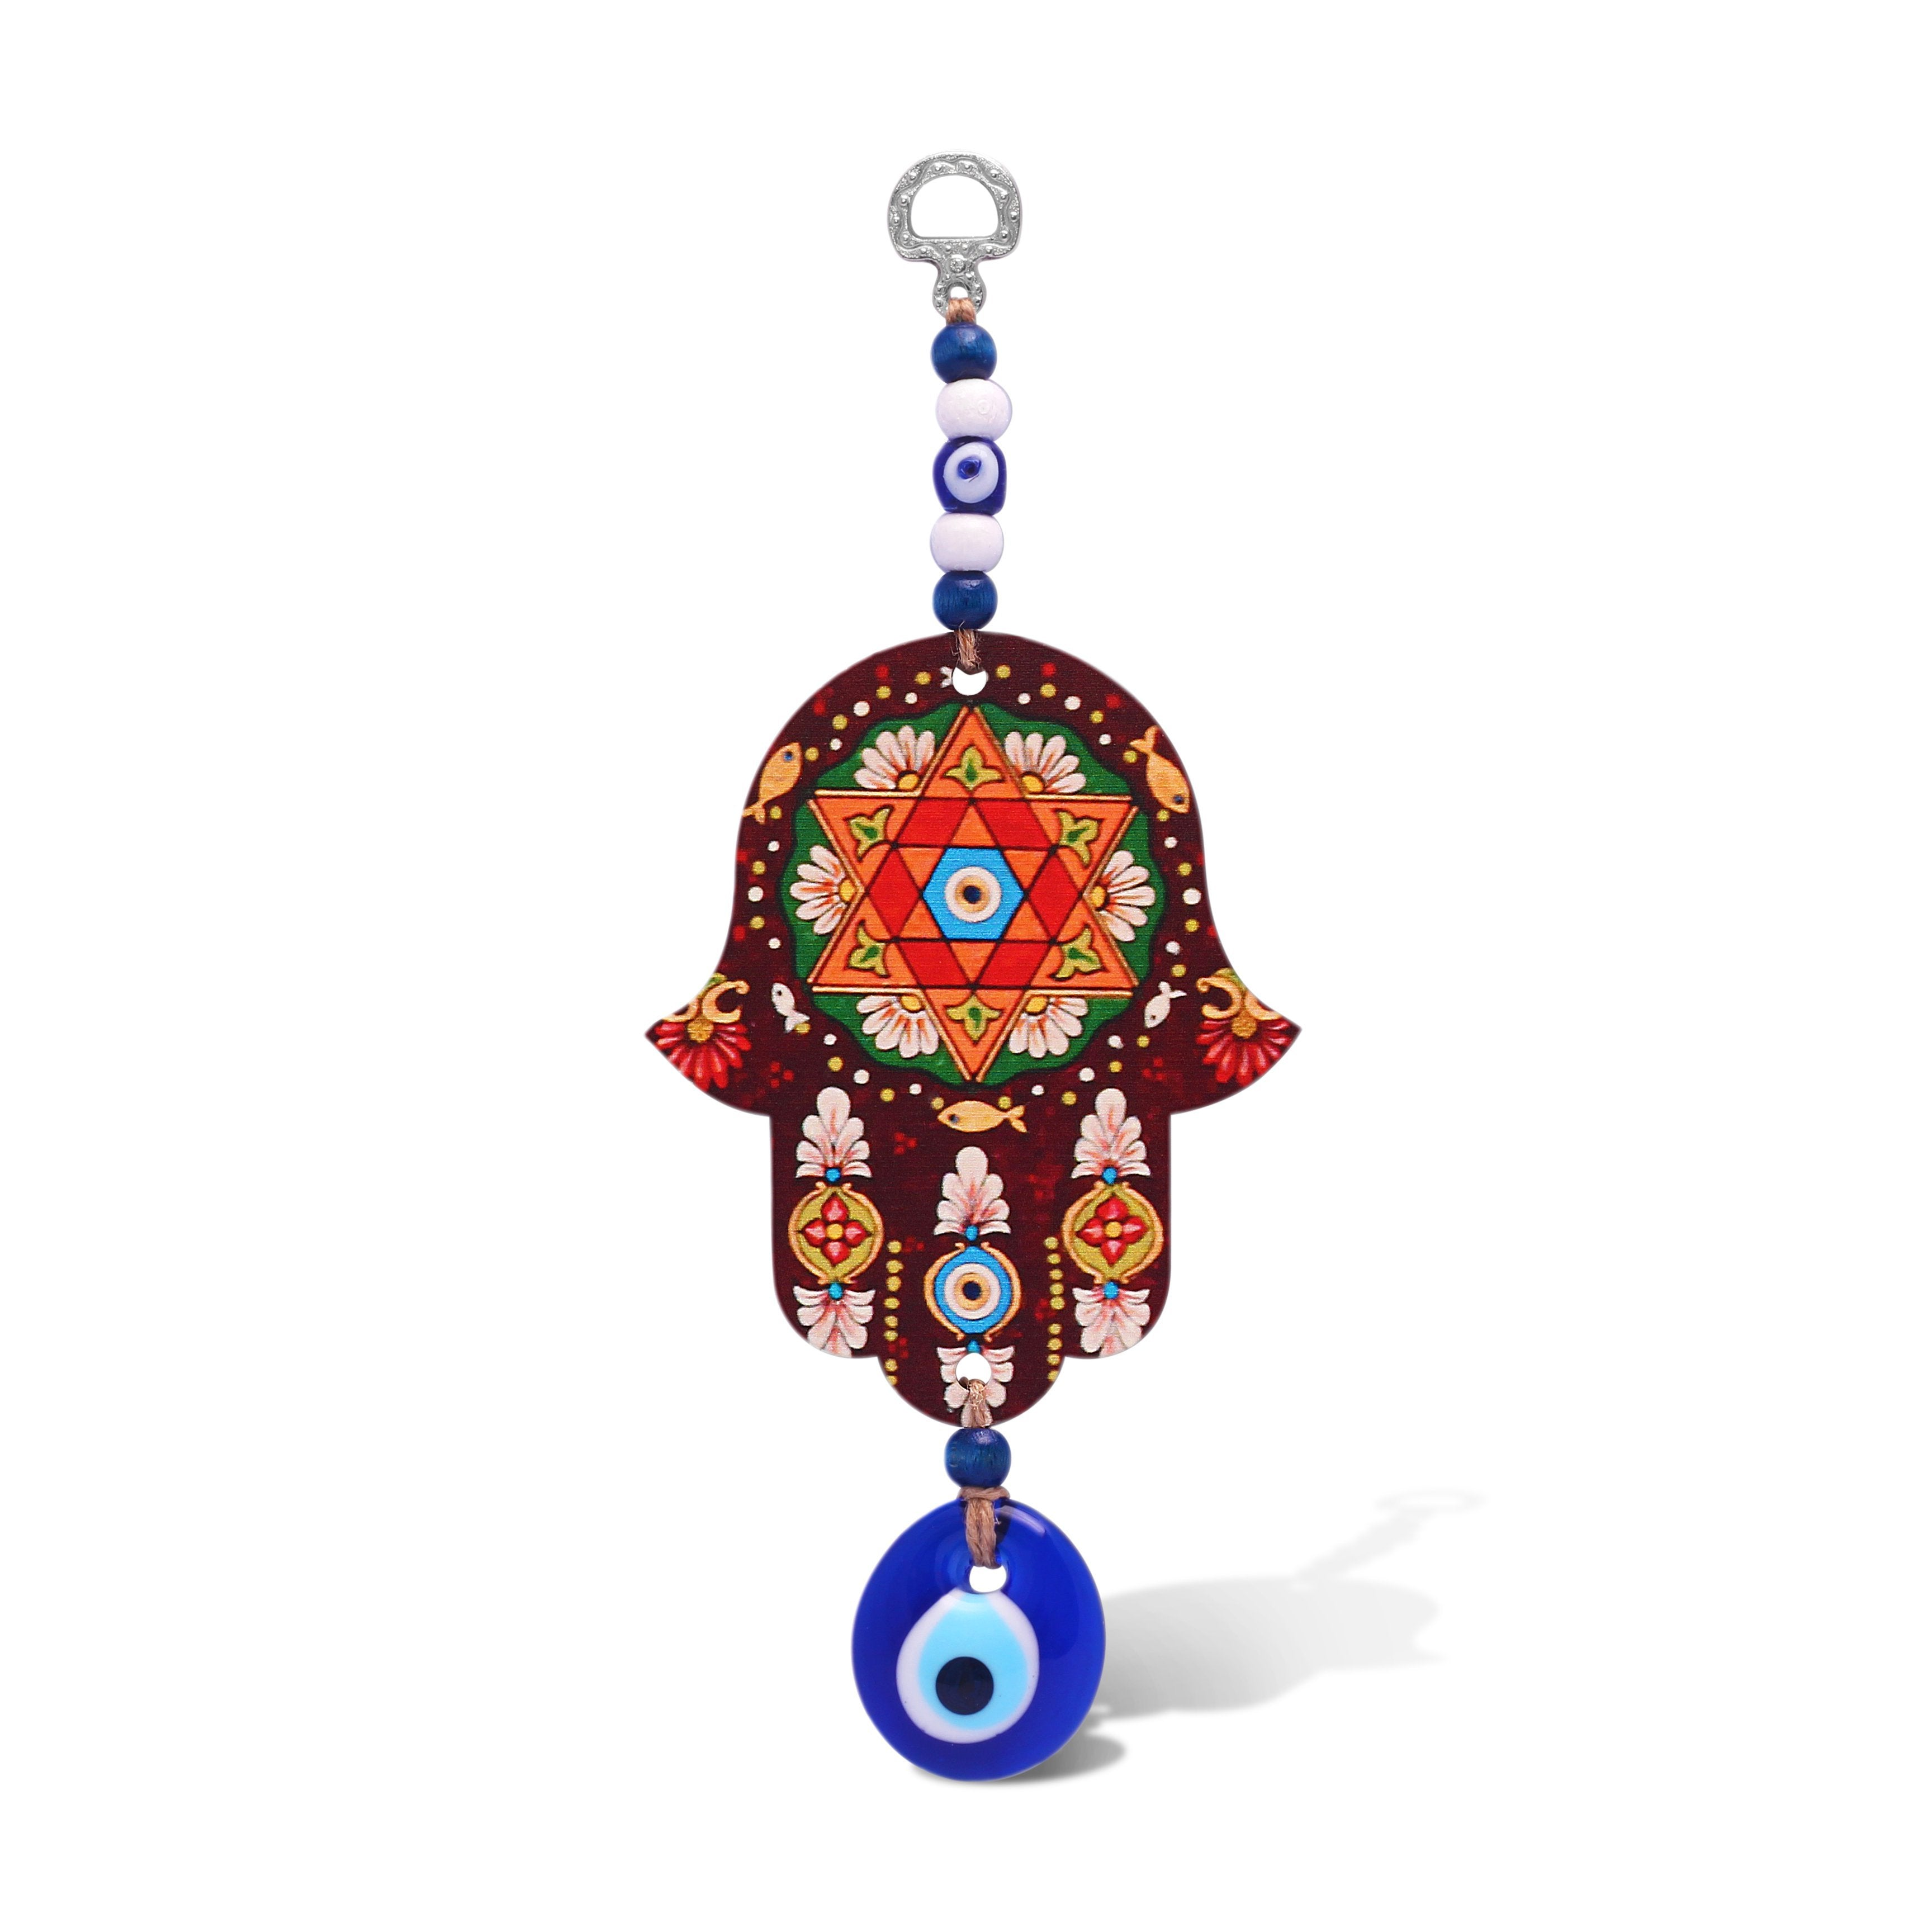 Jewish Star Hamsa Wall Hanging for Your Home